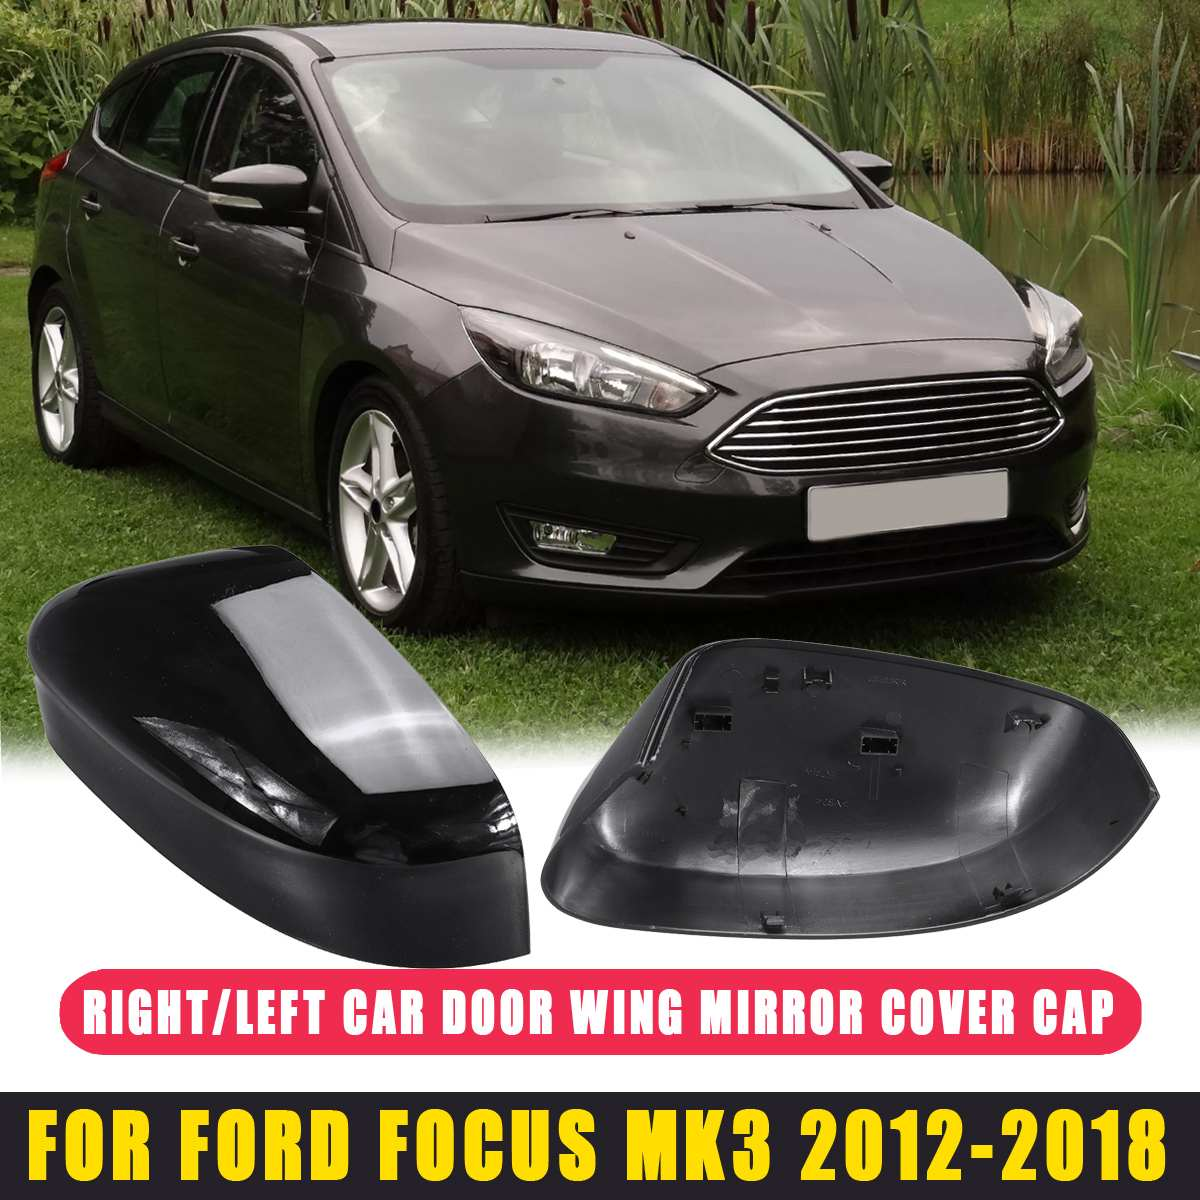 1pcs/2pcs Gloss Black color ABS Rearview <font><b>Mirrors</b></font> Cover Cup trim Fit for <font><b>ford</b></font> <font><b>Focus</b></font> <font><b>MK3</b></font> 2012 2013 2014 2015 2016 2017 2018 NEW image